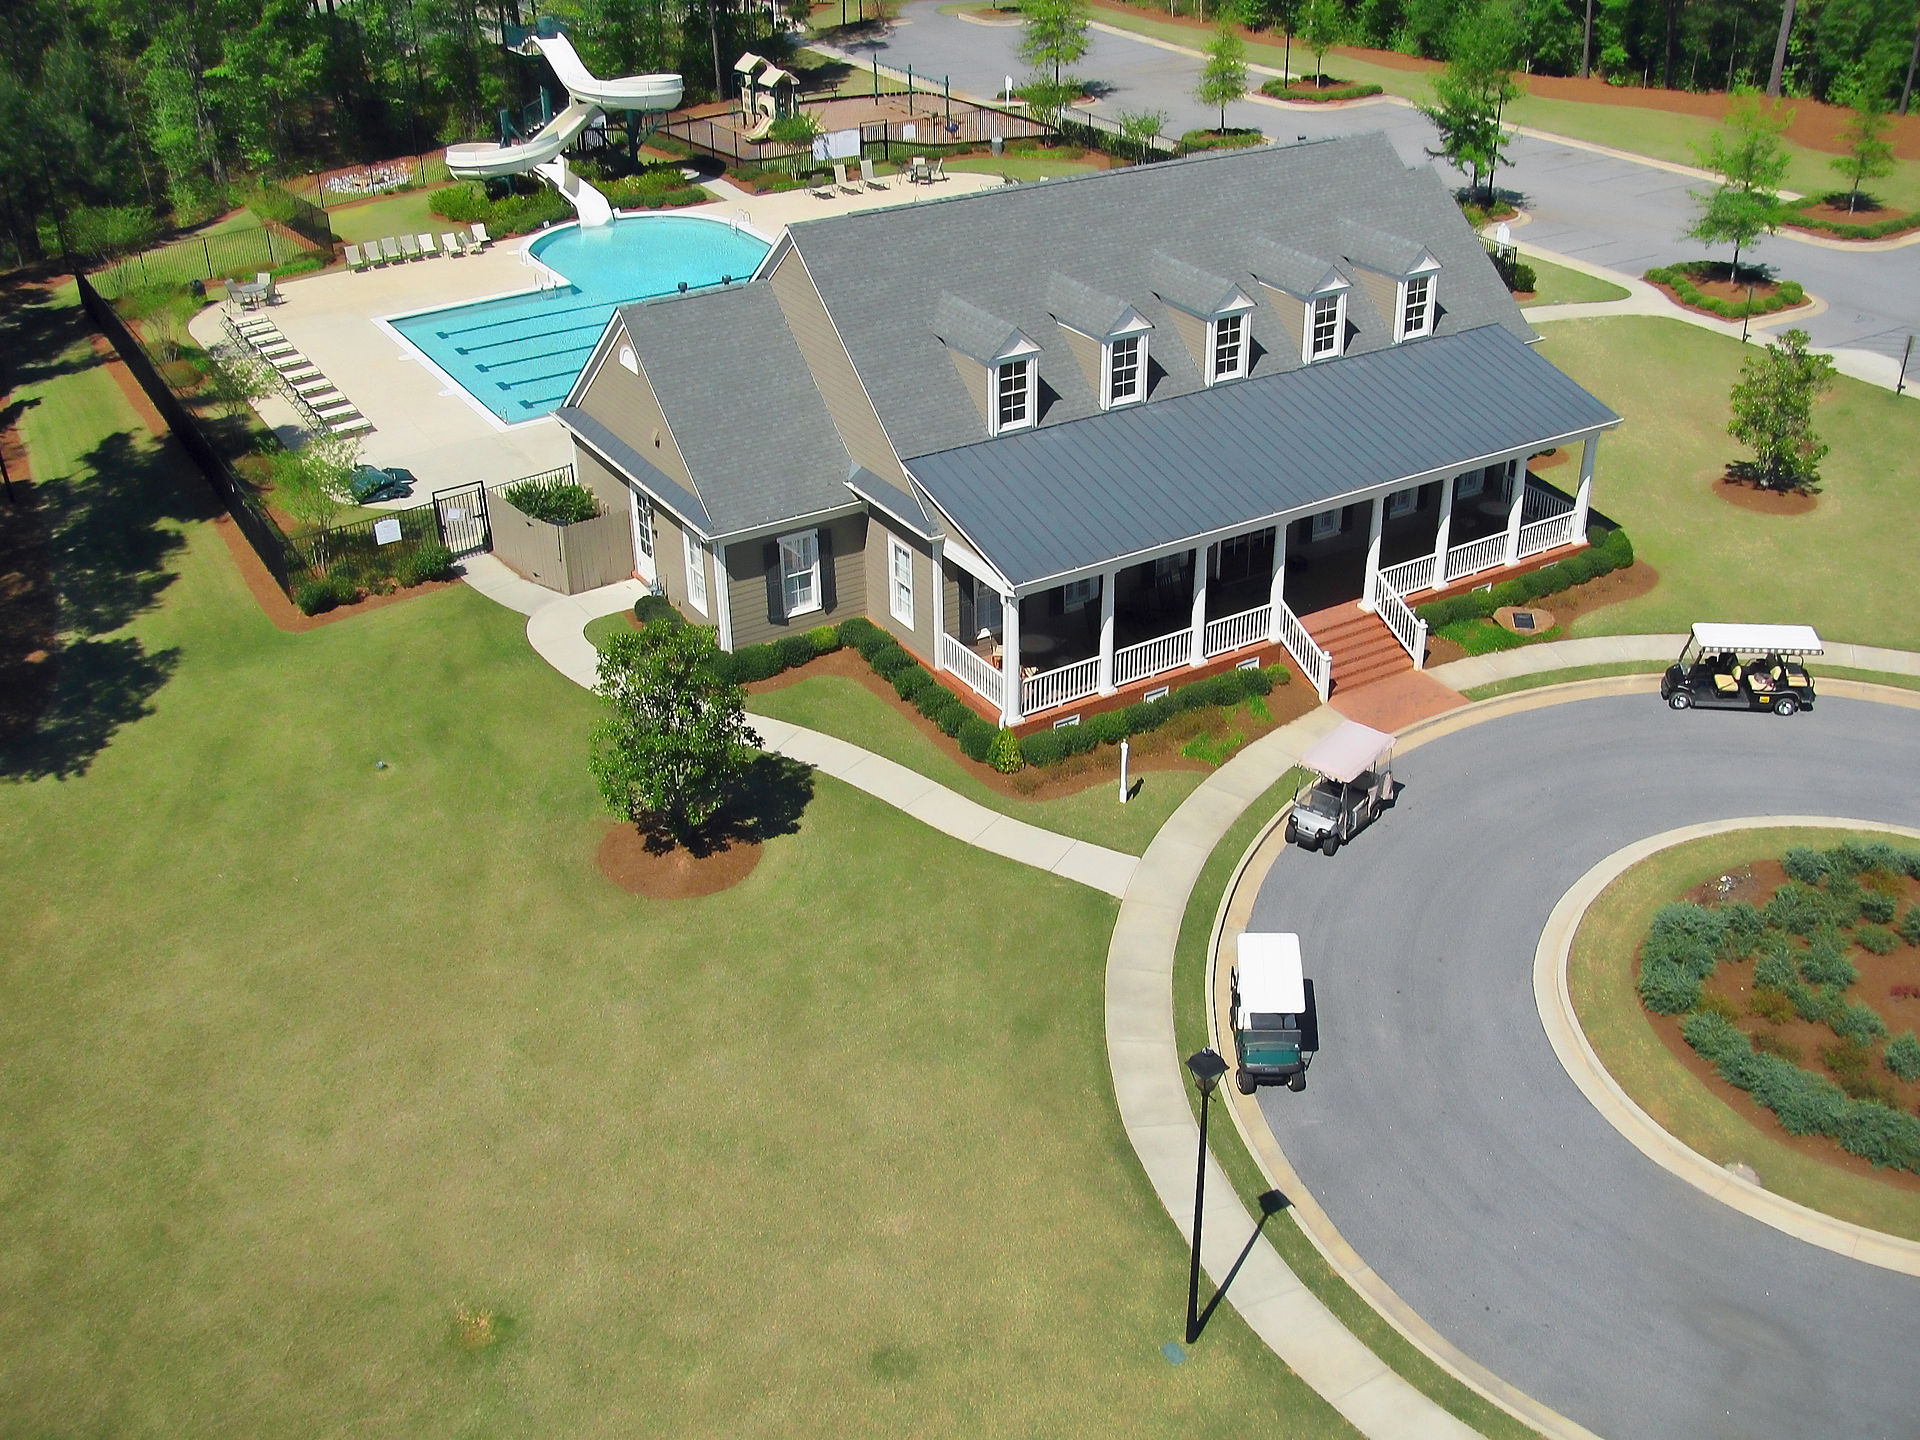 Centennial_clubhouse_in_Peachtree_City,_Georgia